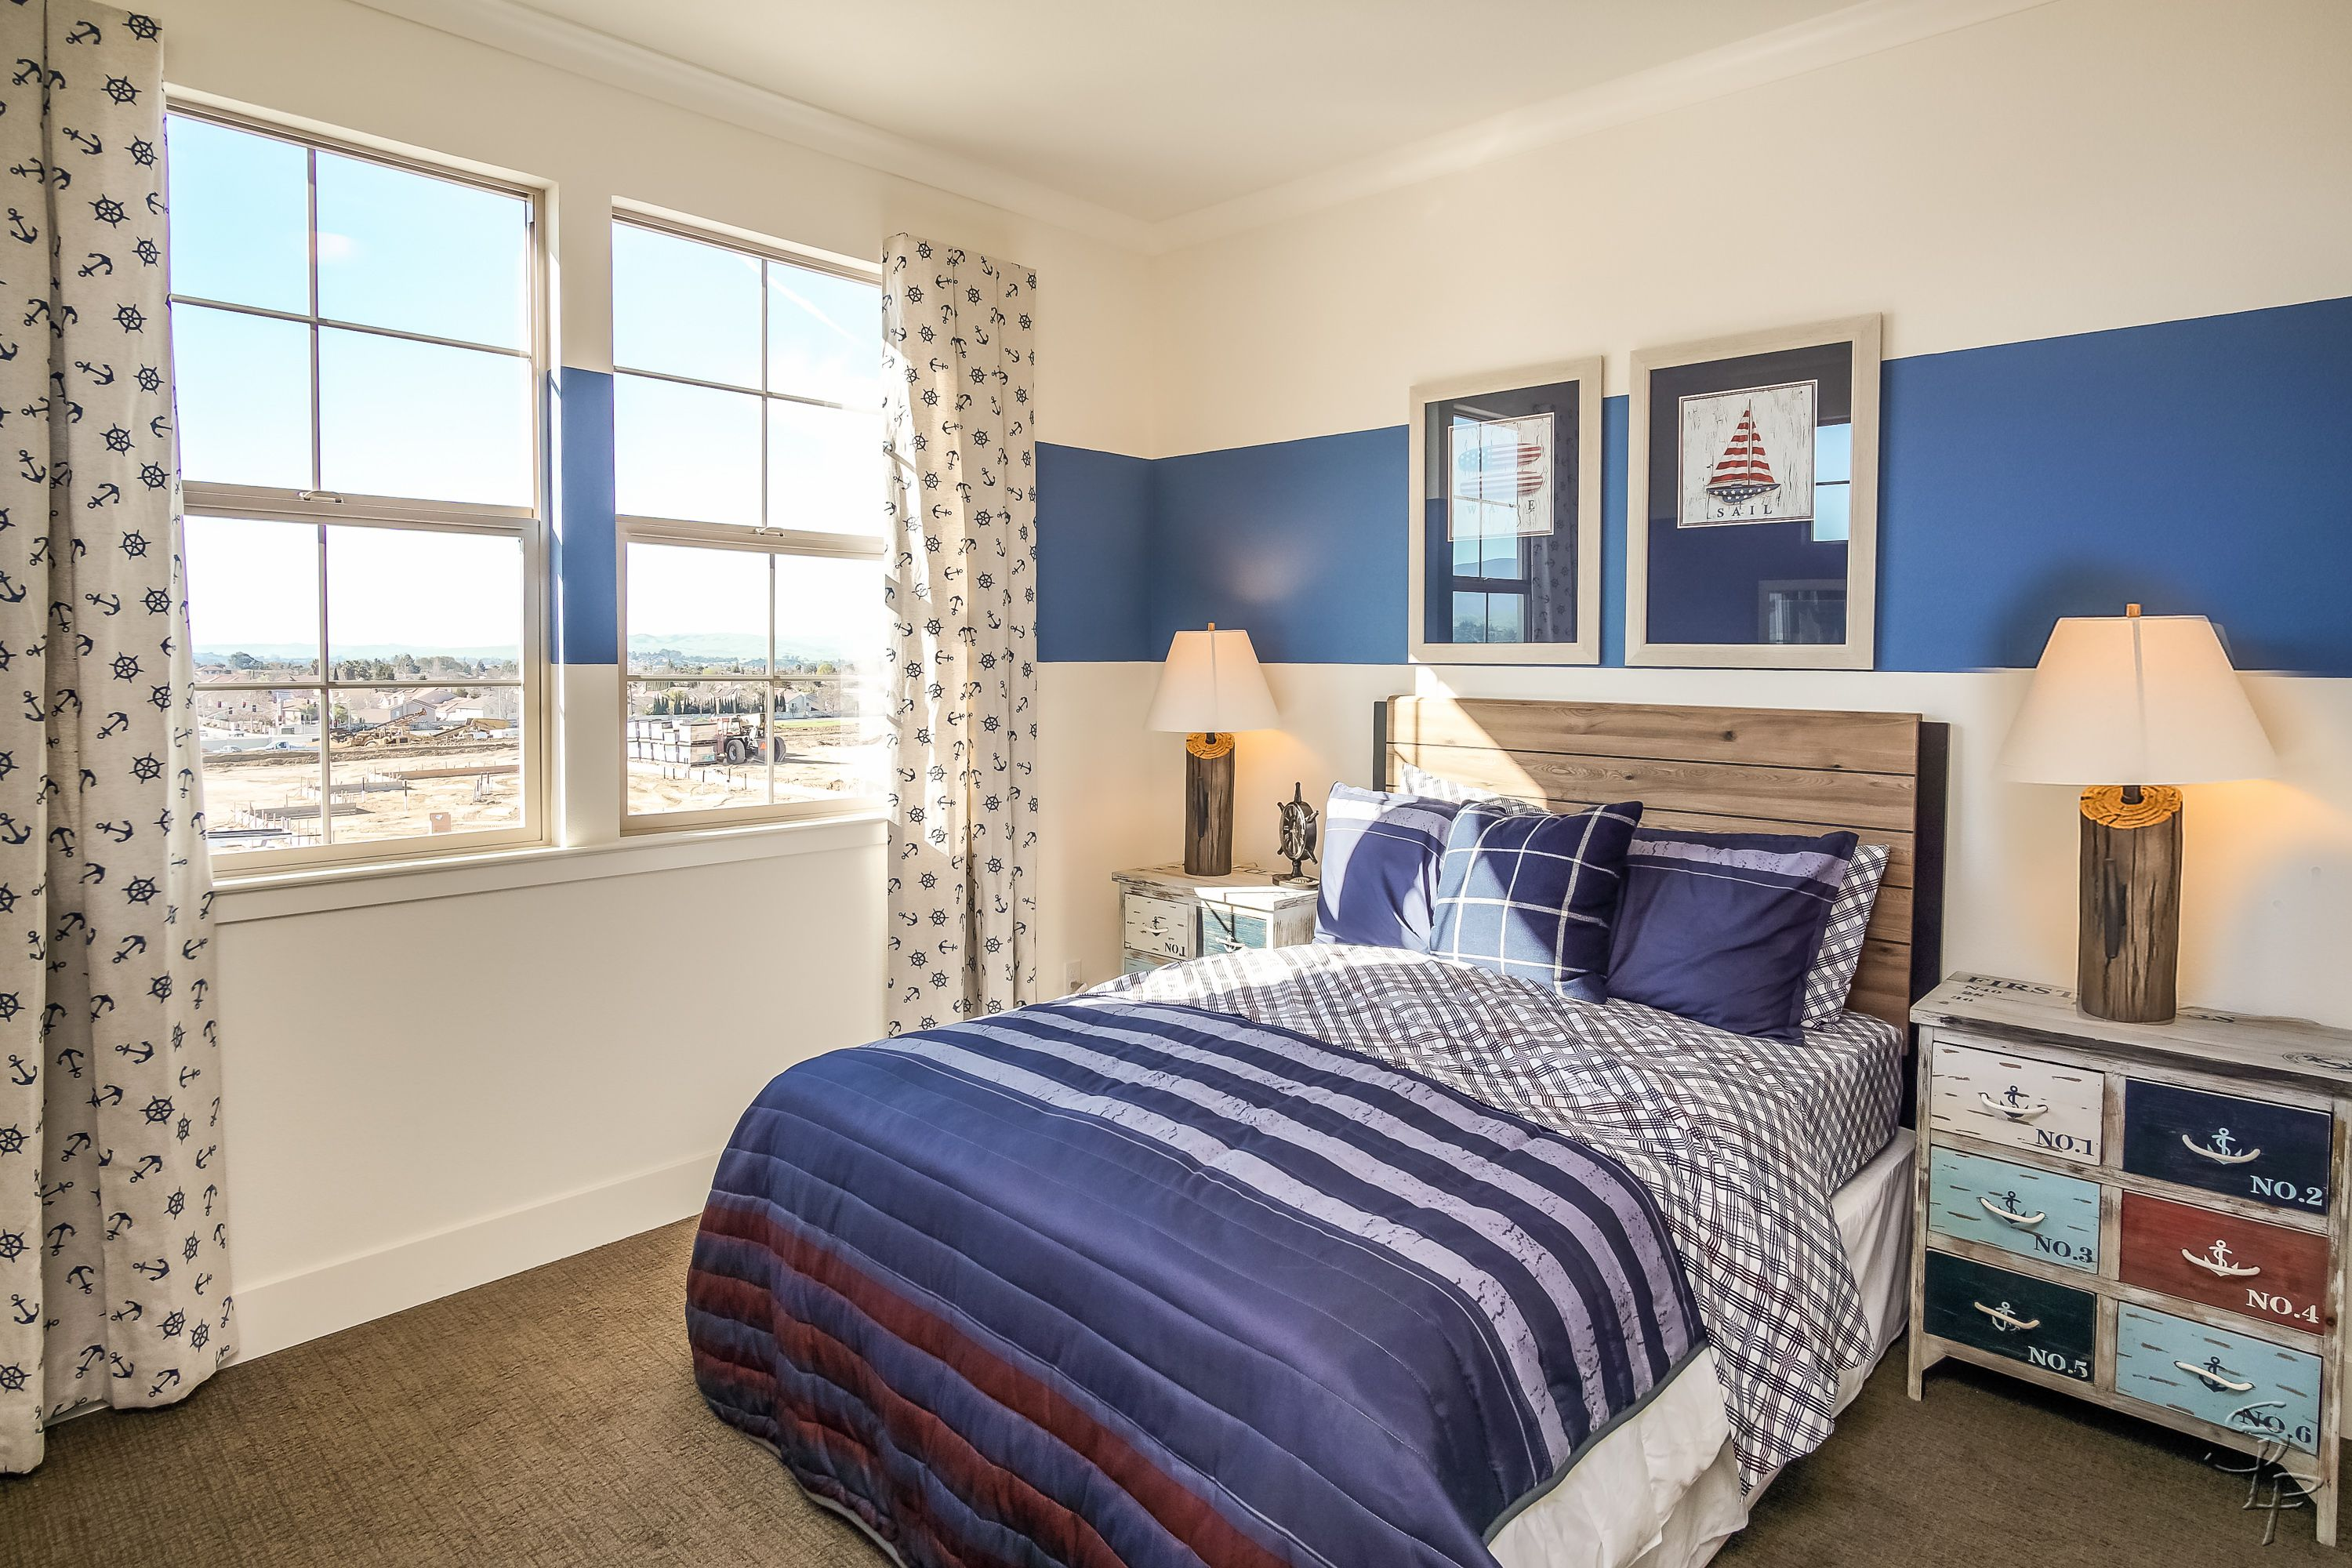 Bedroom featured in The Capitola By Anderson Homes in Santa Cruz, CA